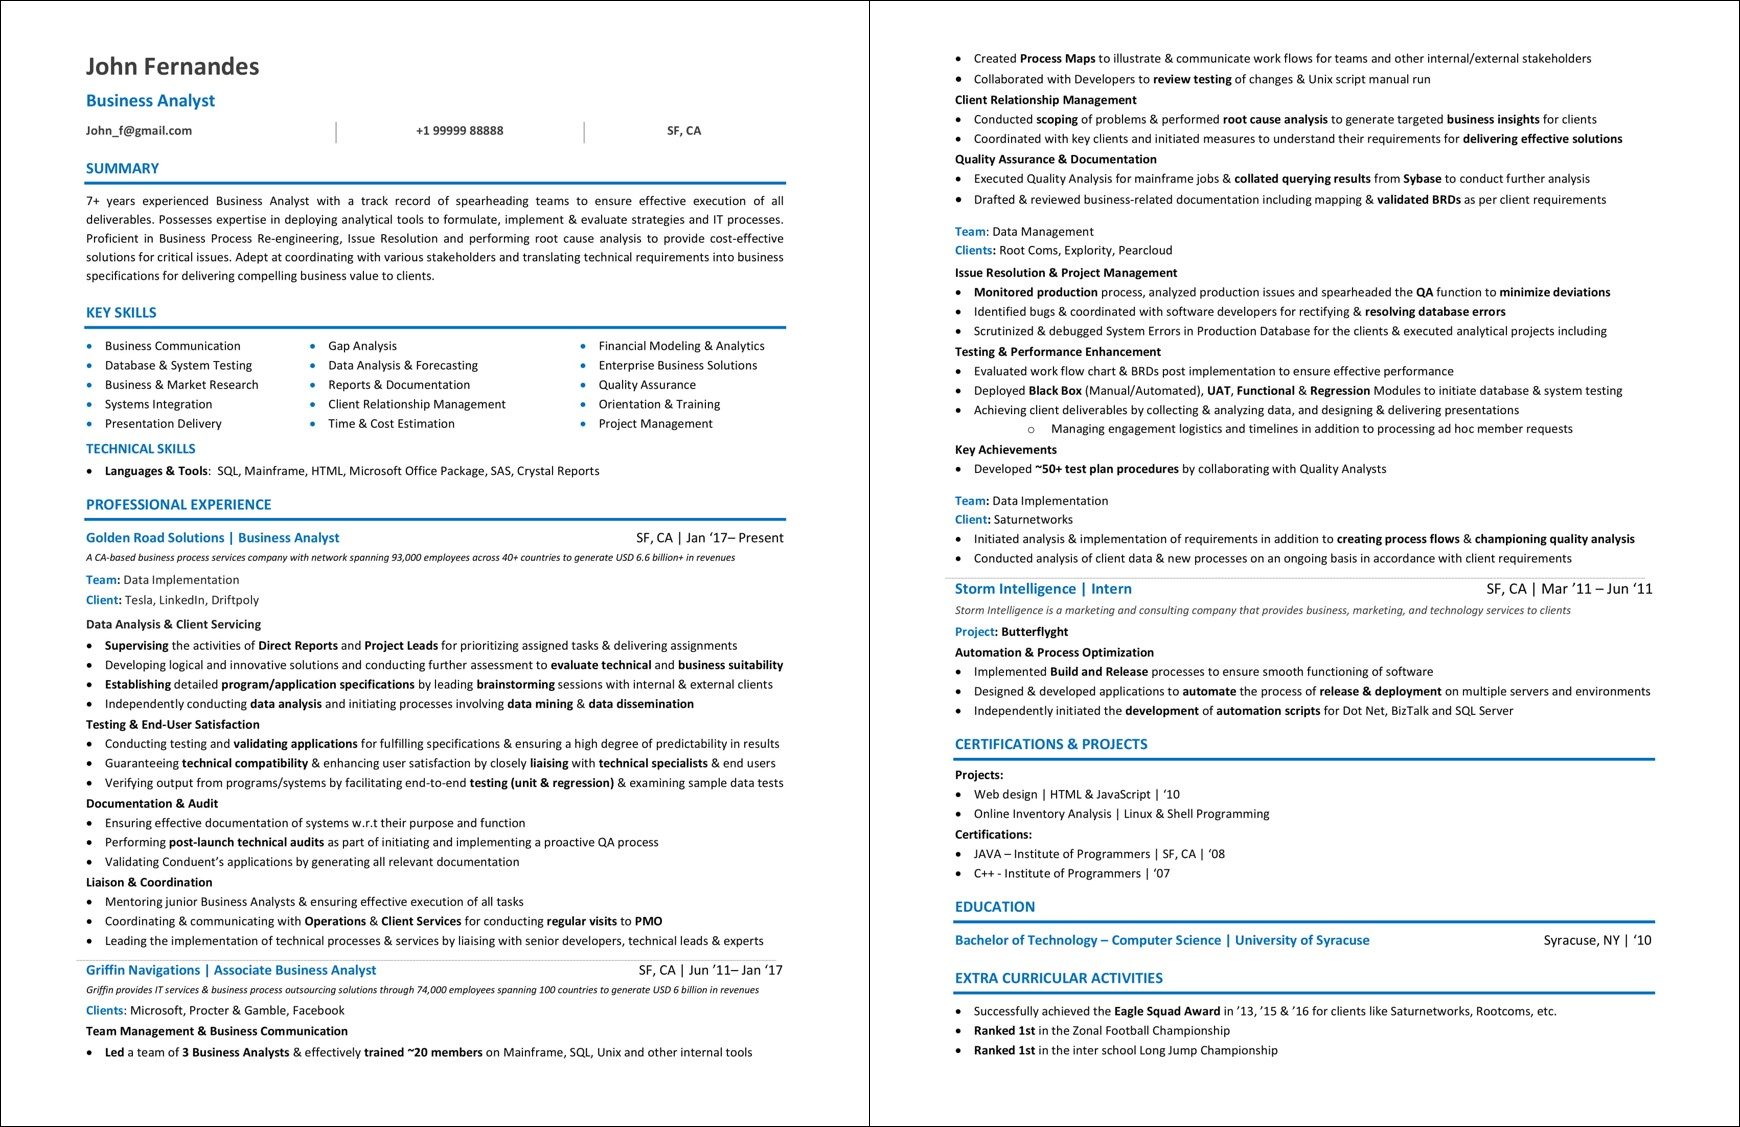 Business Analyst Resume Examples 2019 Guide Best Samples